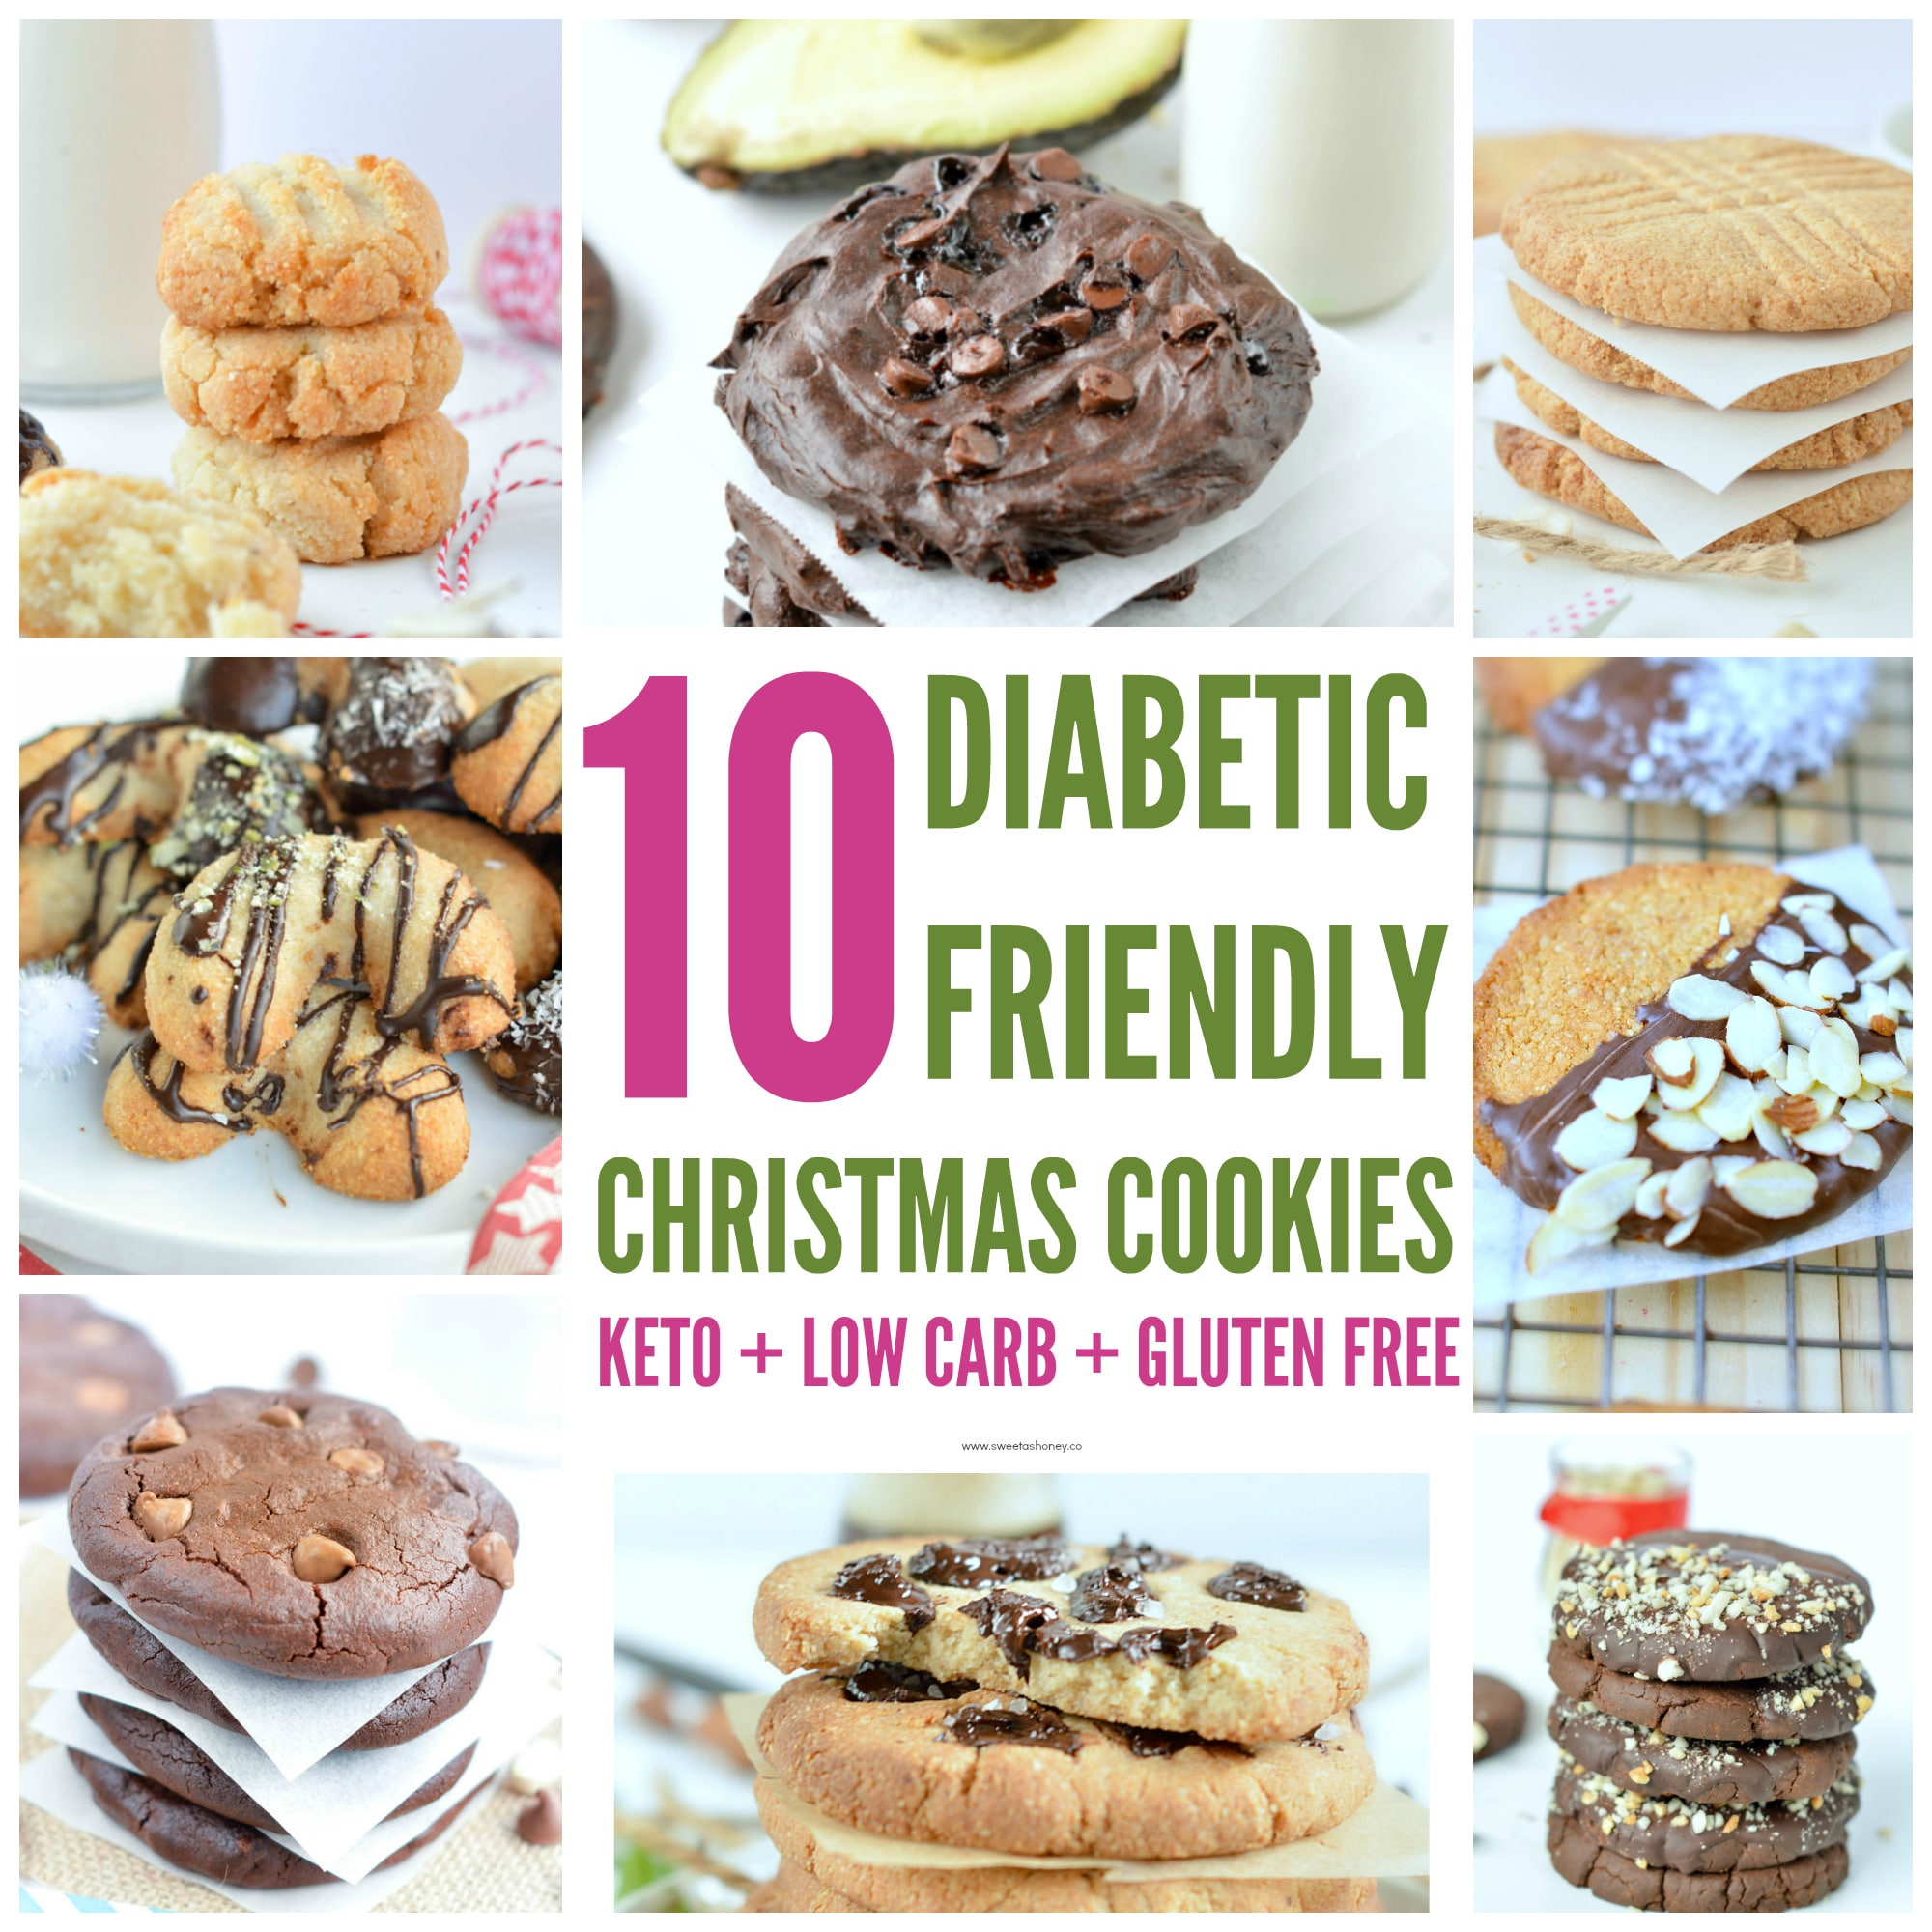 Diabetic Christmas Cookies